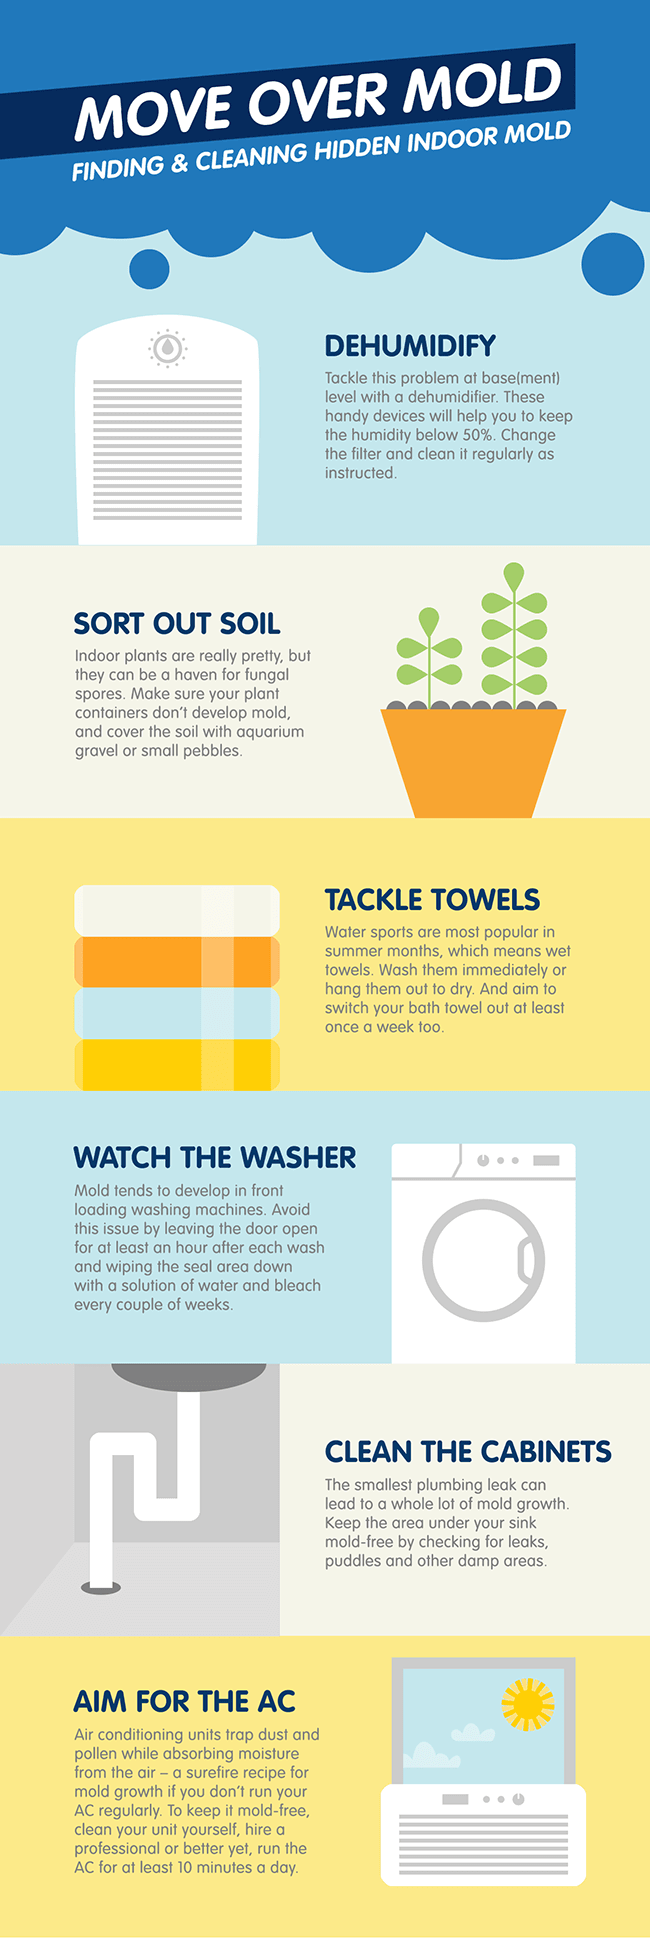 Move Over Mold - Infographic